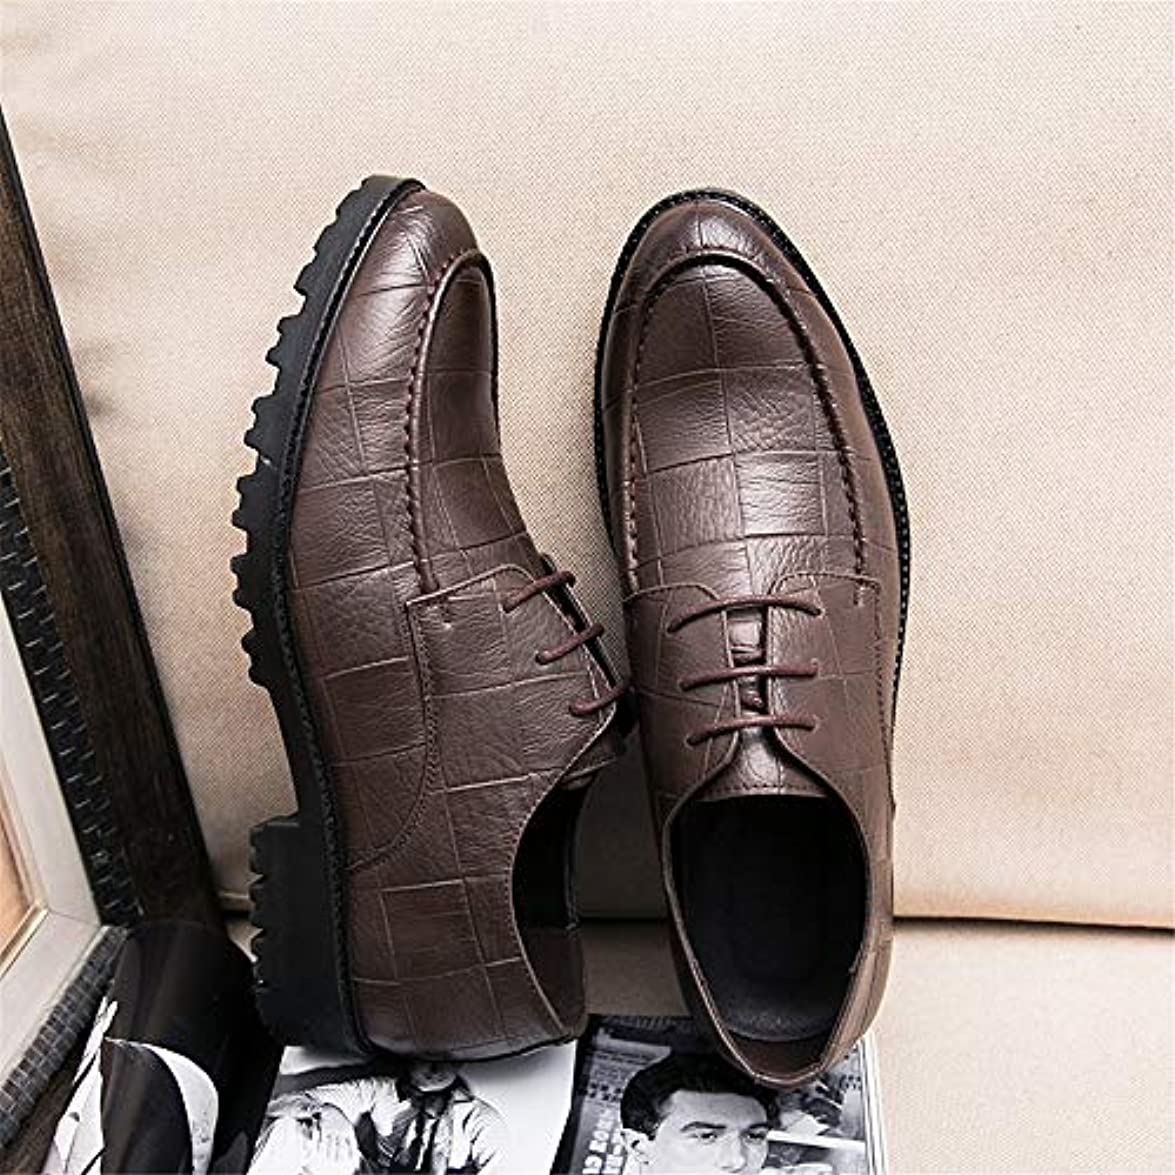 Iwgr Moda Maschile Oxford Casual Style Grid Lines Comode E Low Top Formal Shoes Fashion Slipper